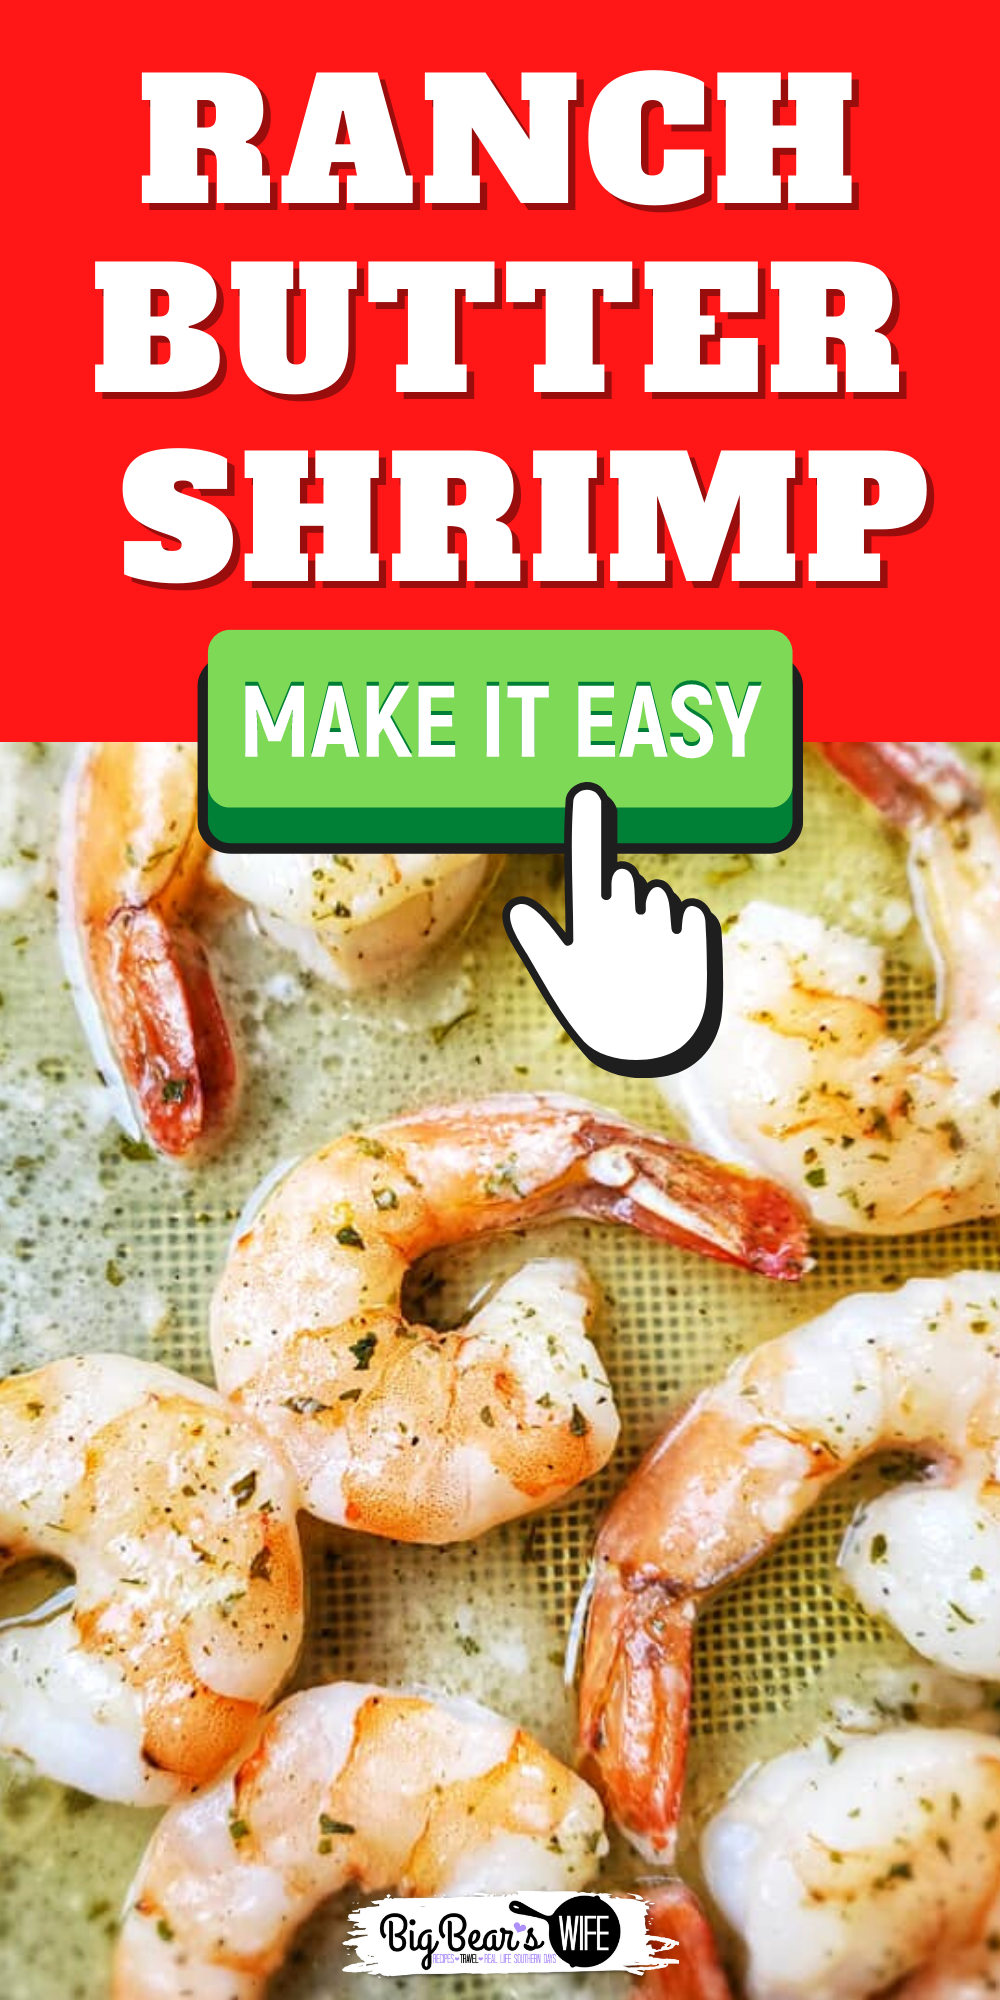 Ranch Butter Shrimp is a super quick dish that takes less than 15 minutes to make with only 3 ingredients! You're going to go crazy over how easy this shrimp recipe is!  via @bigbearswife